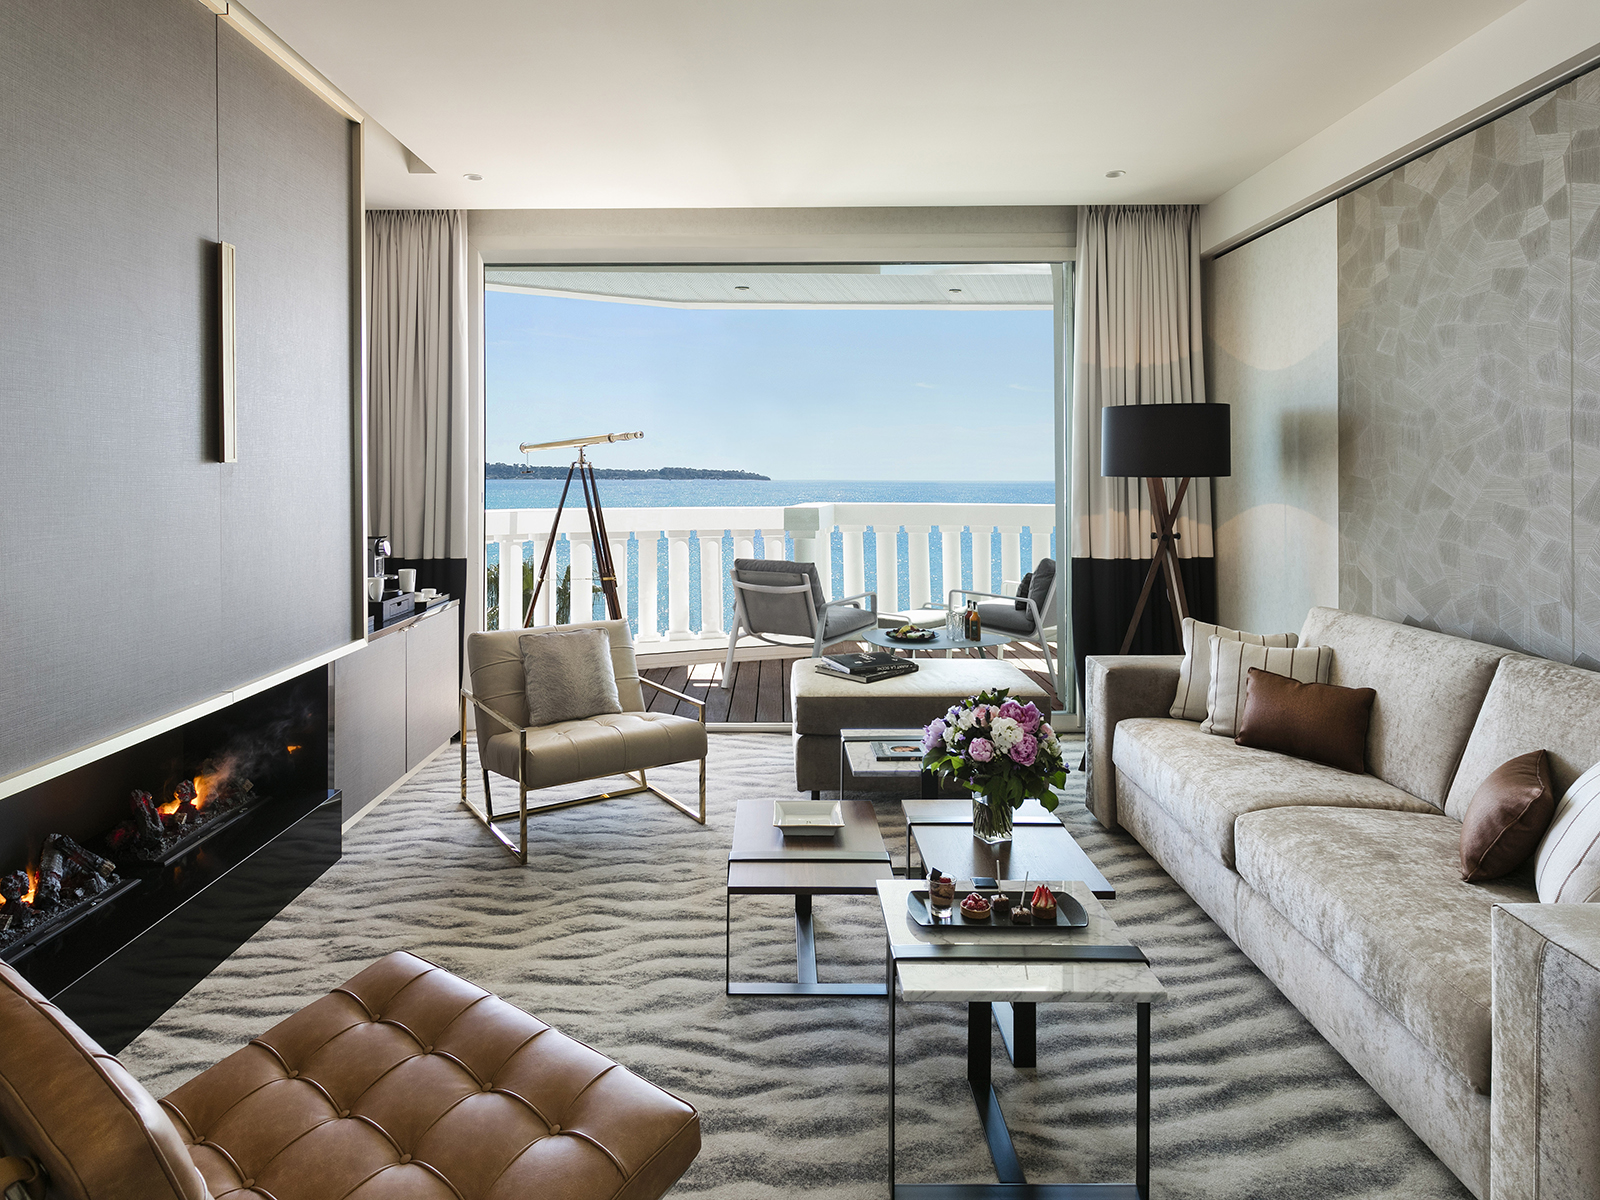 A hotel room with sea view